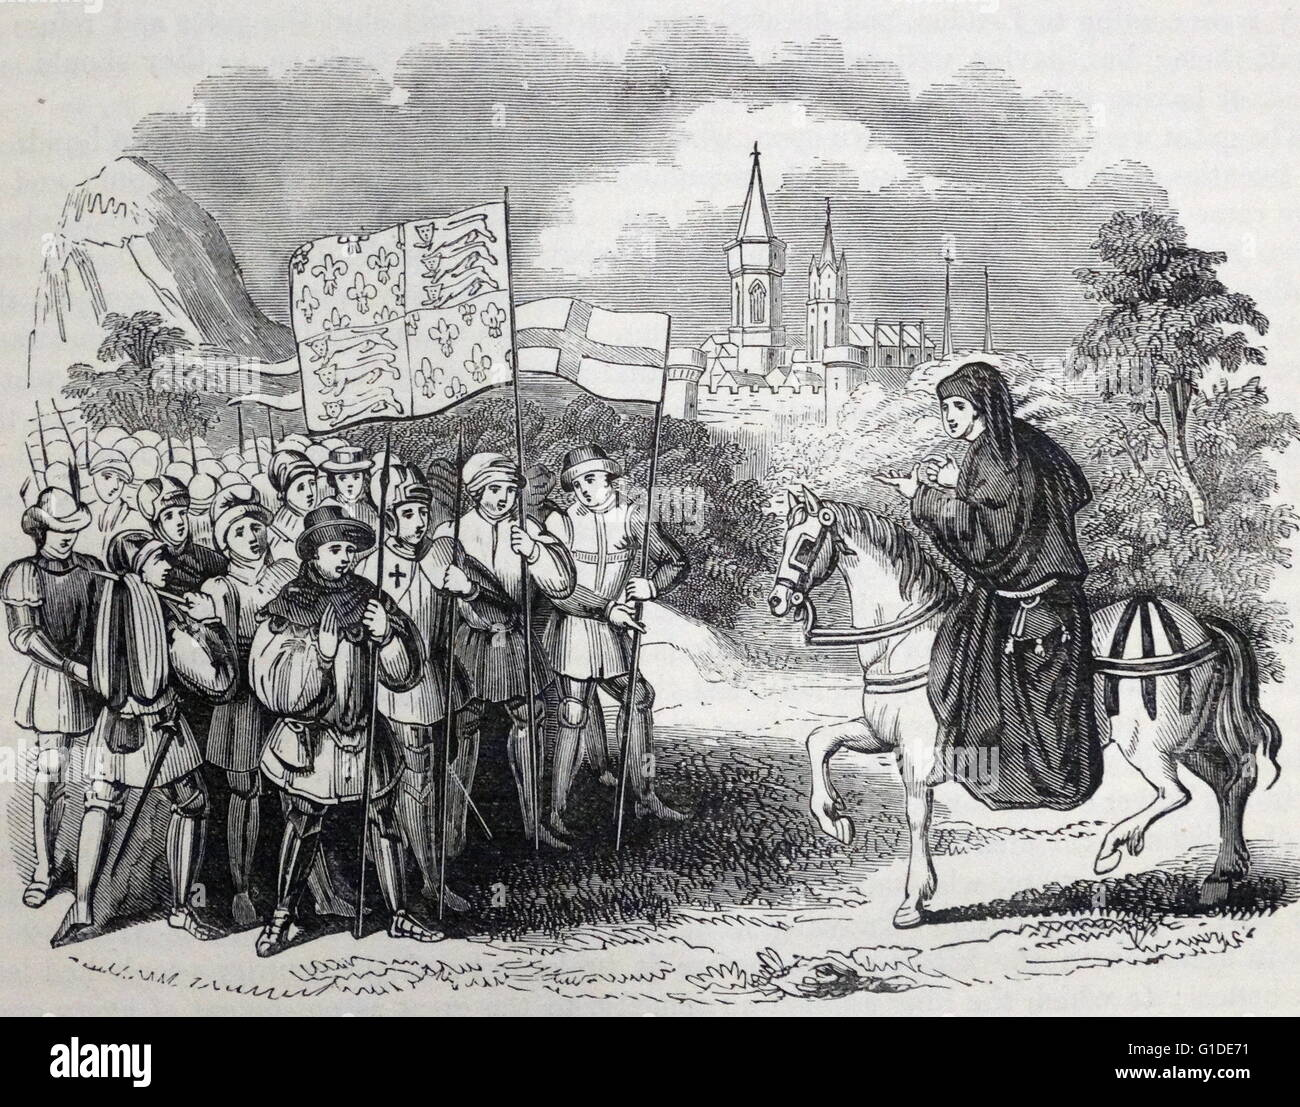 Engraving depicting John Ball (1338-1381) an English Lollard priest who  took a prominent part in the Peasants' Revolt of 1381. Dated 14th Century